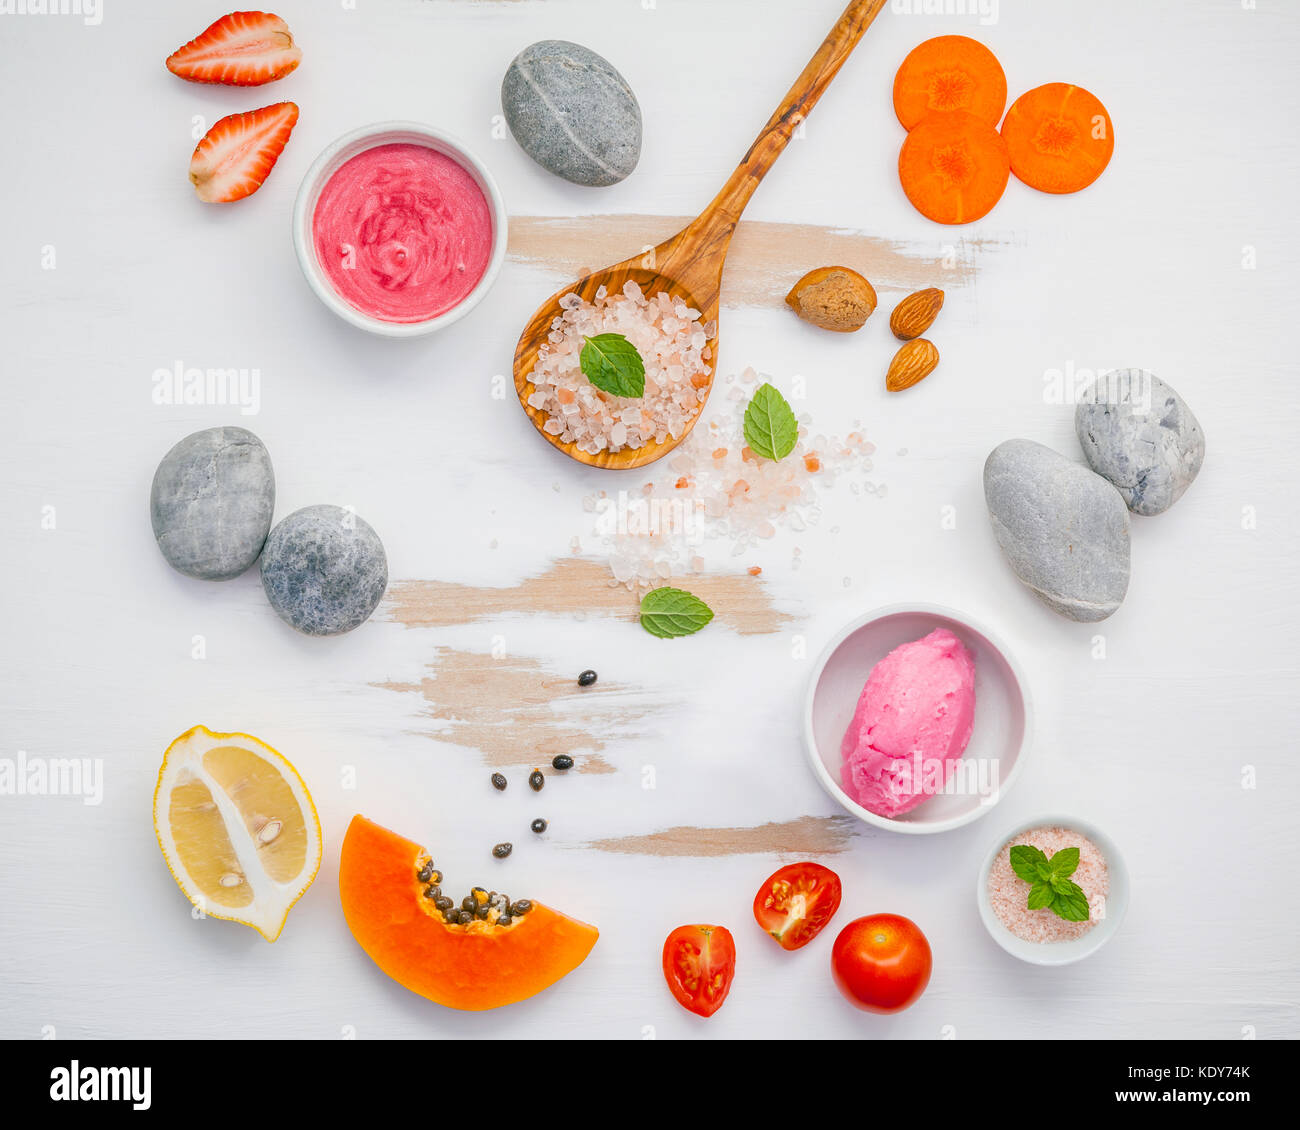 Homemade skin care and body scrubs with red natural ingredients strawberry , tomato ,himalayan salt,papaya, carrot - Stock Image